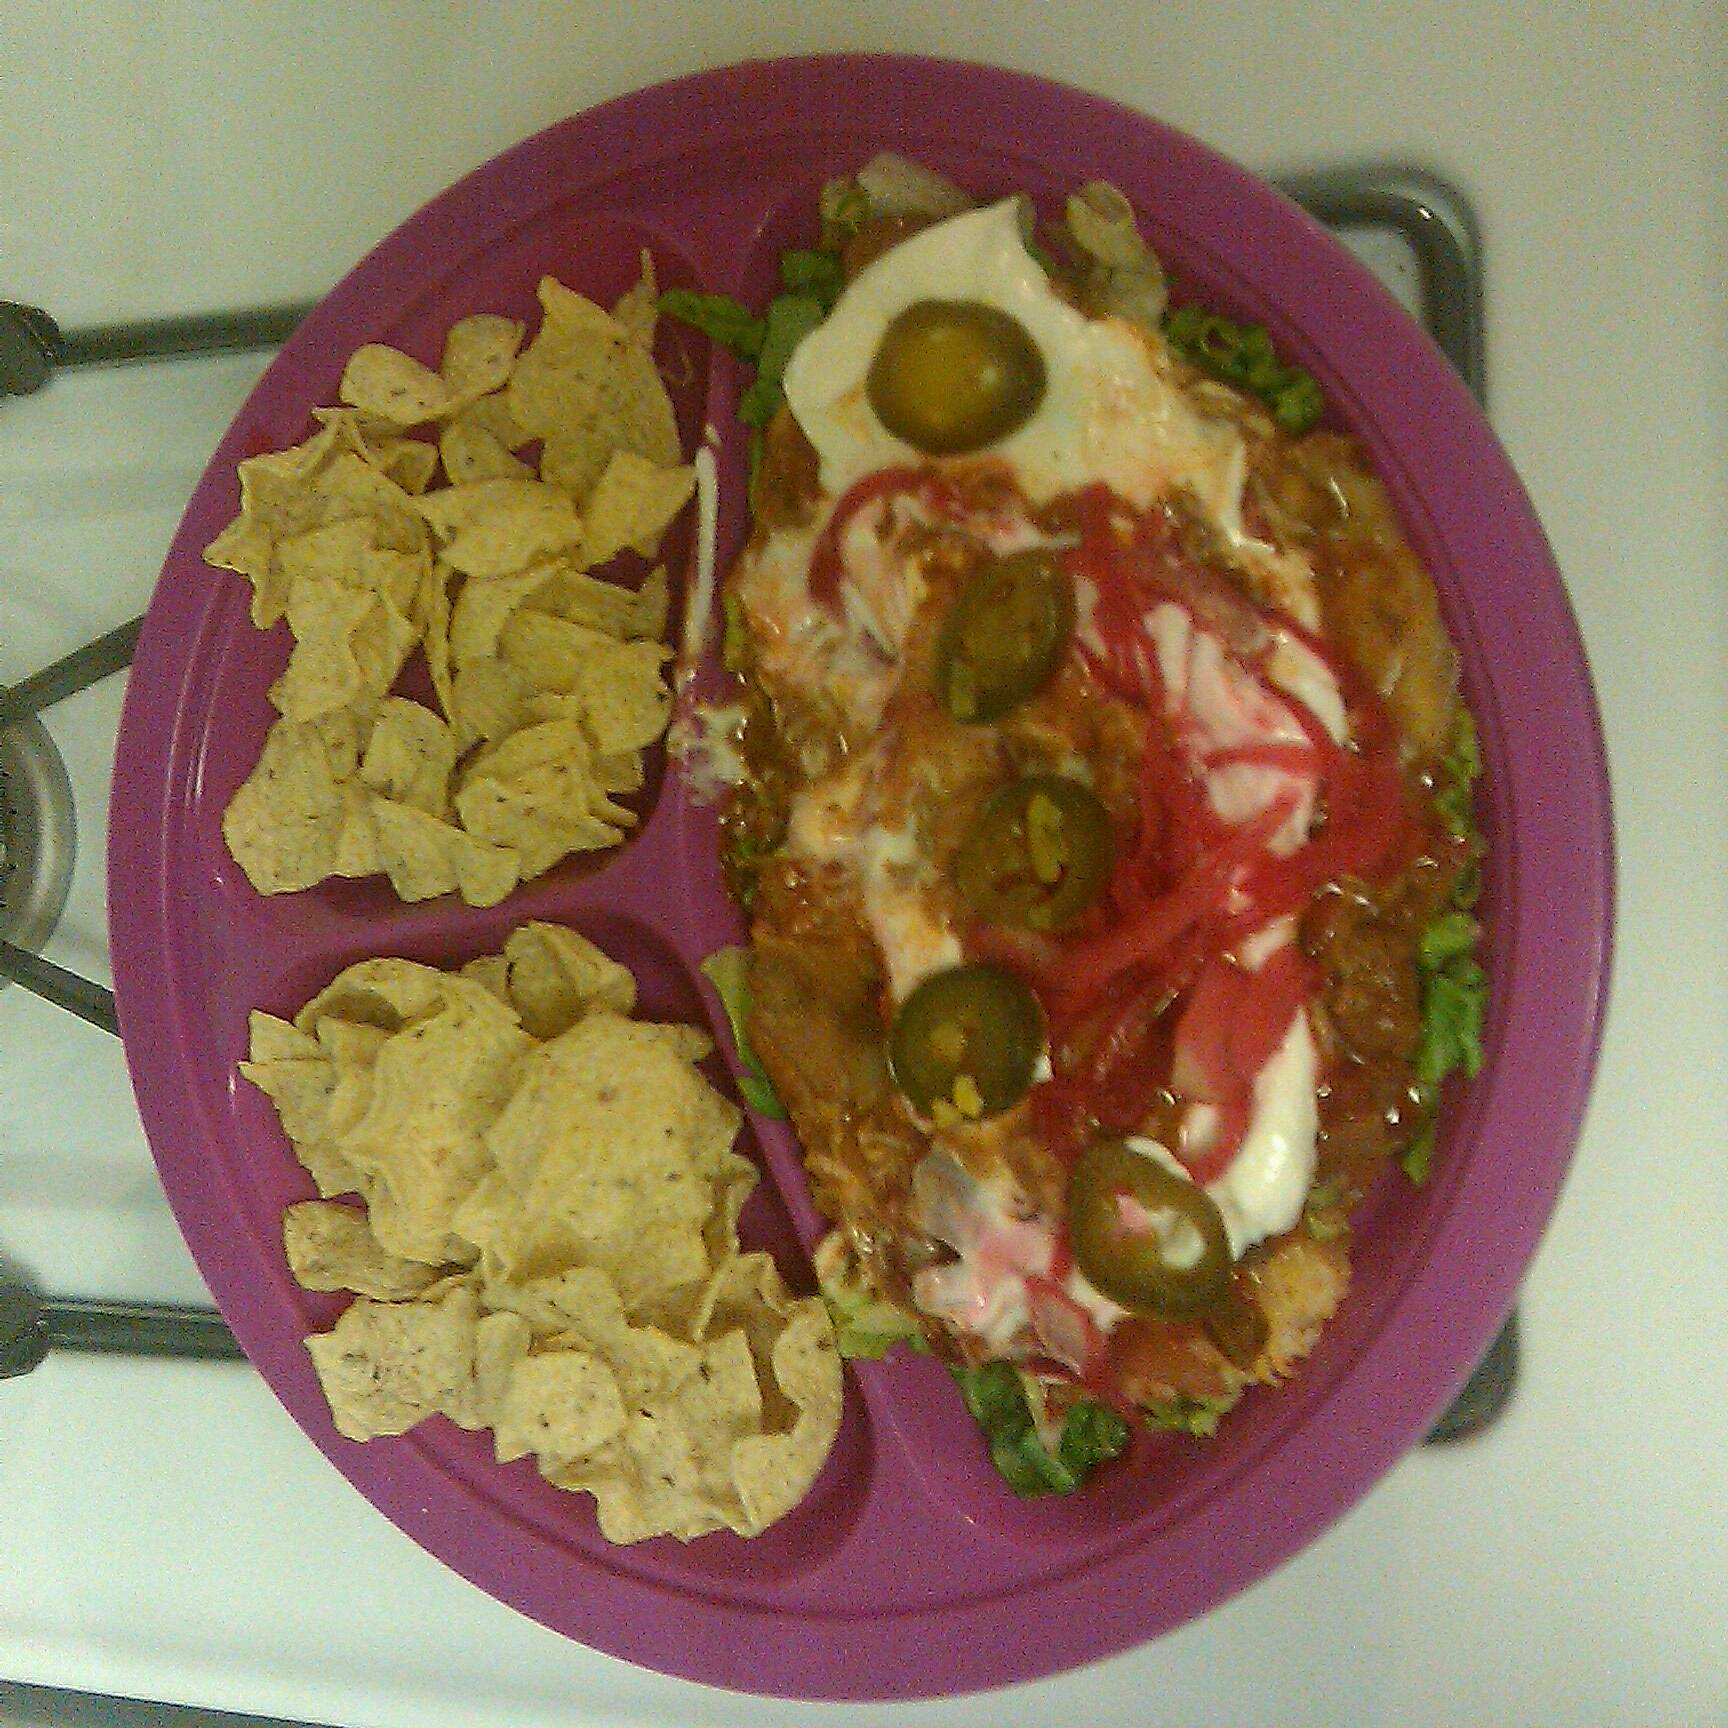 home Baltimore md. :: low fat turkey chili dip with baked scoops